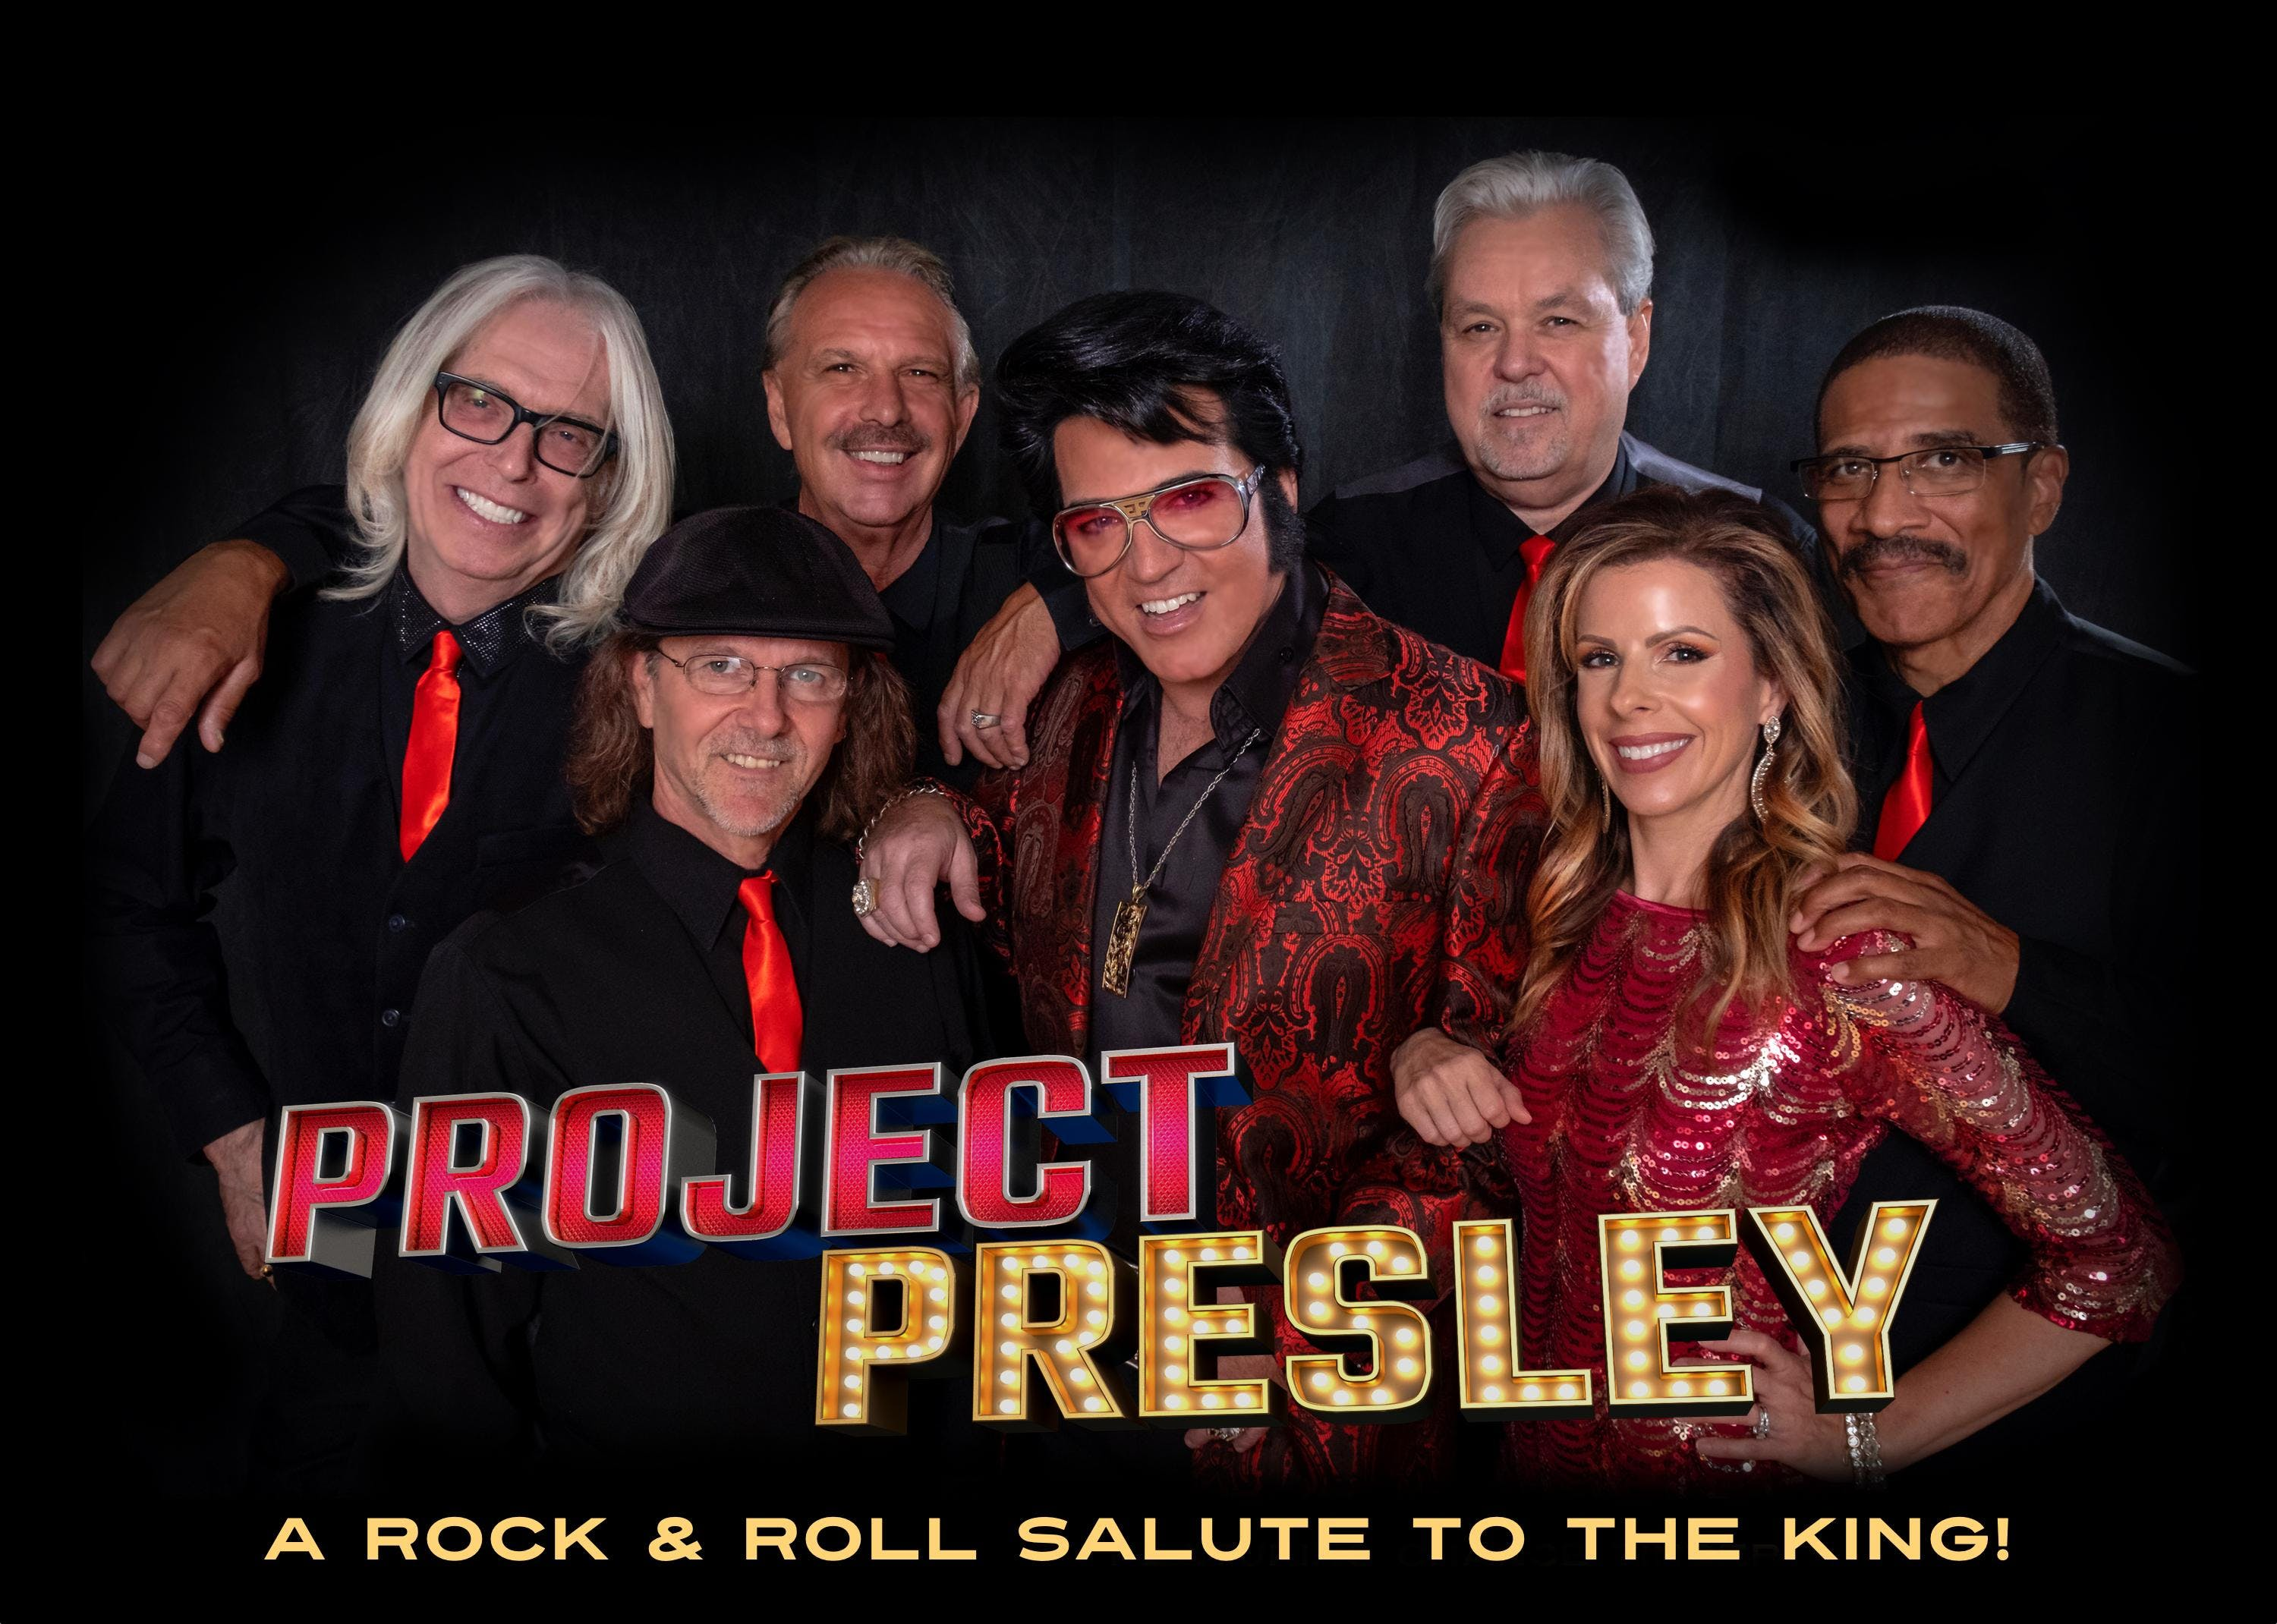 Dinner & Dancing with Chance Tinder & Project Presley!